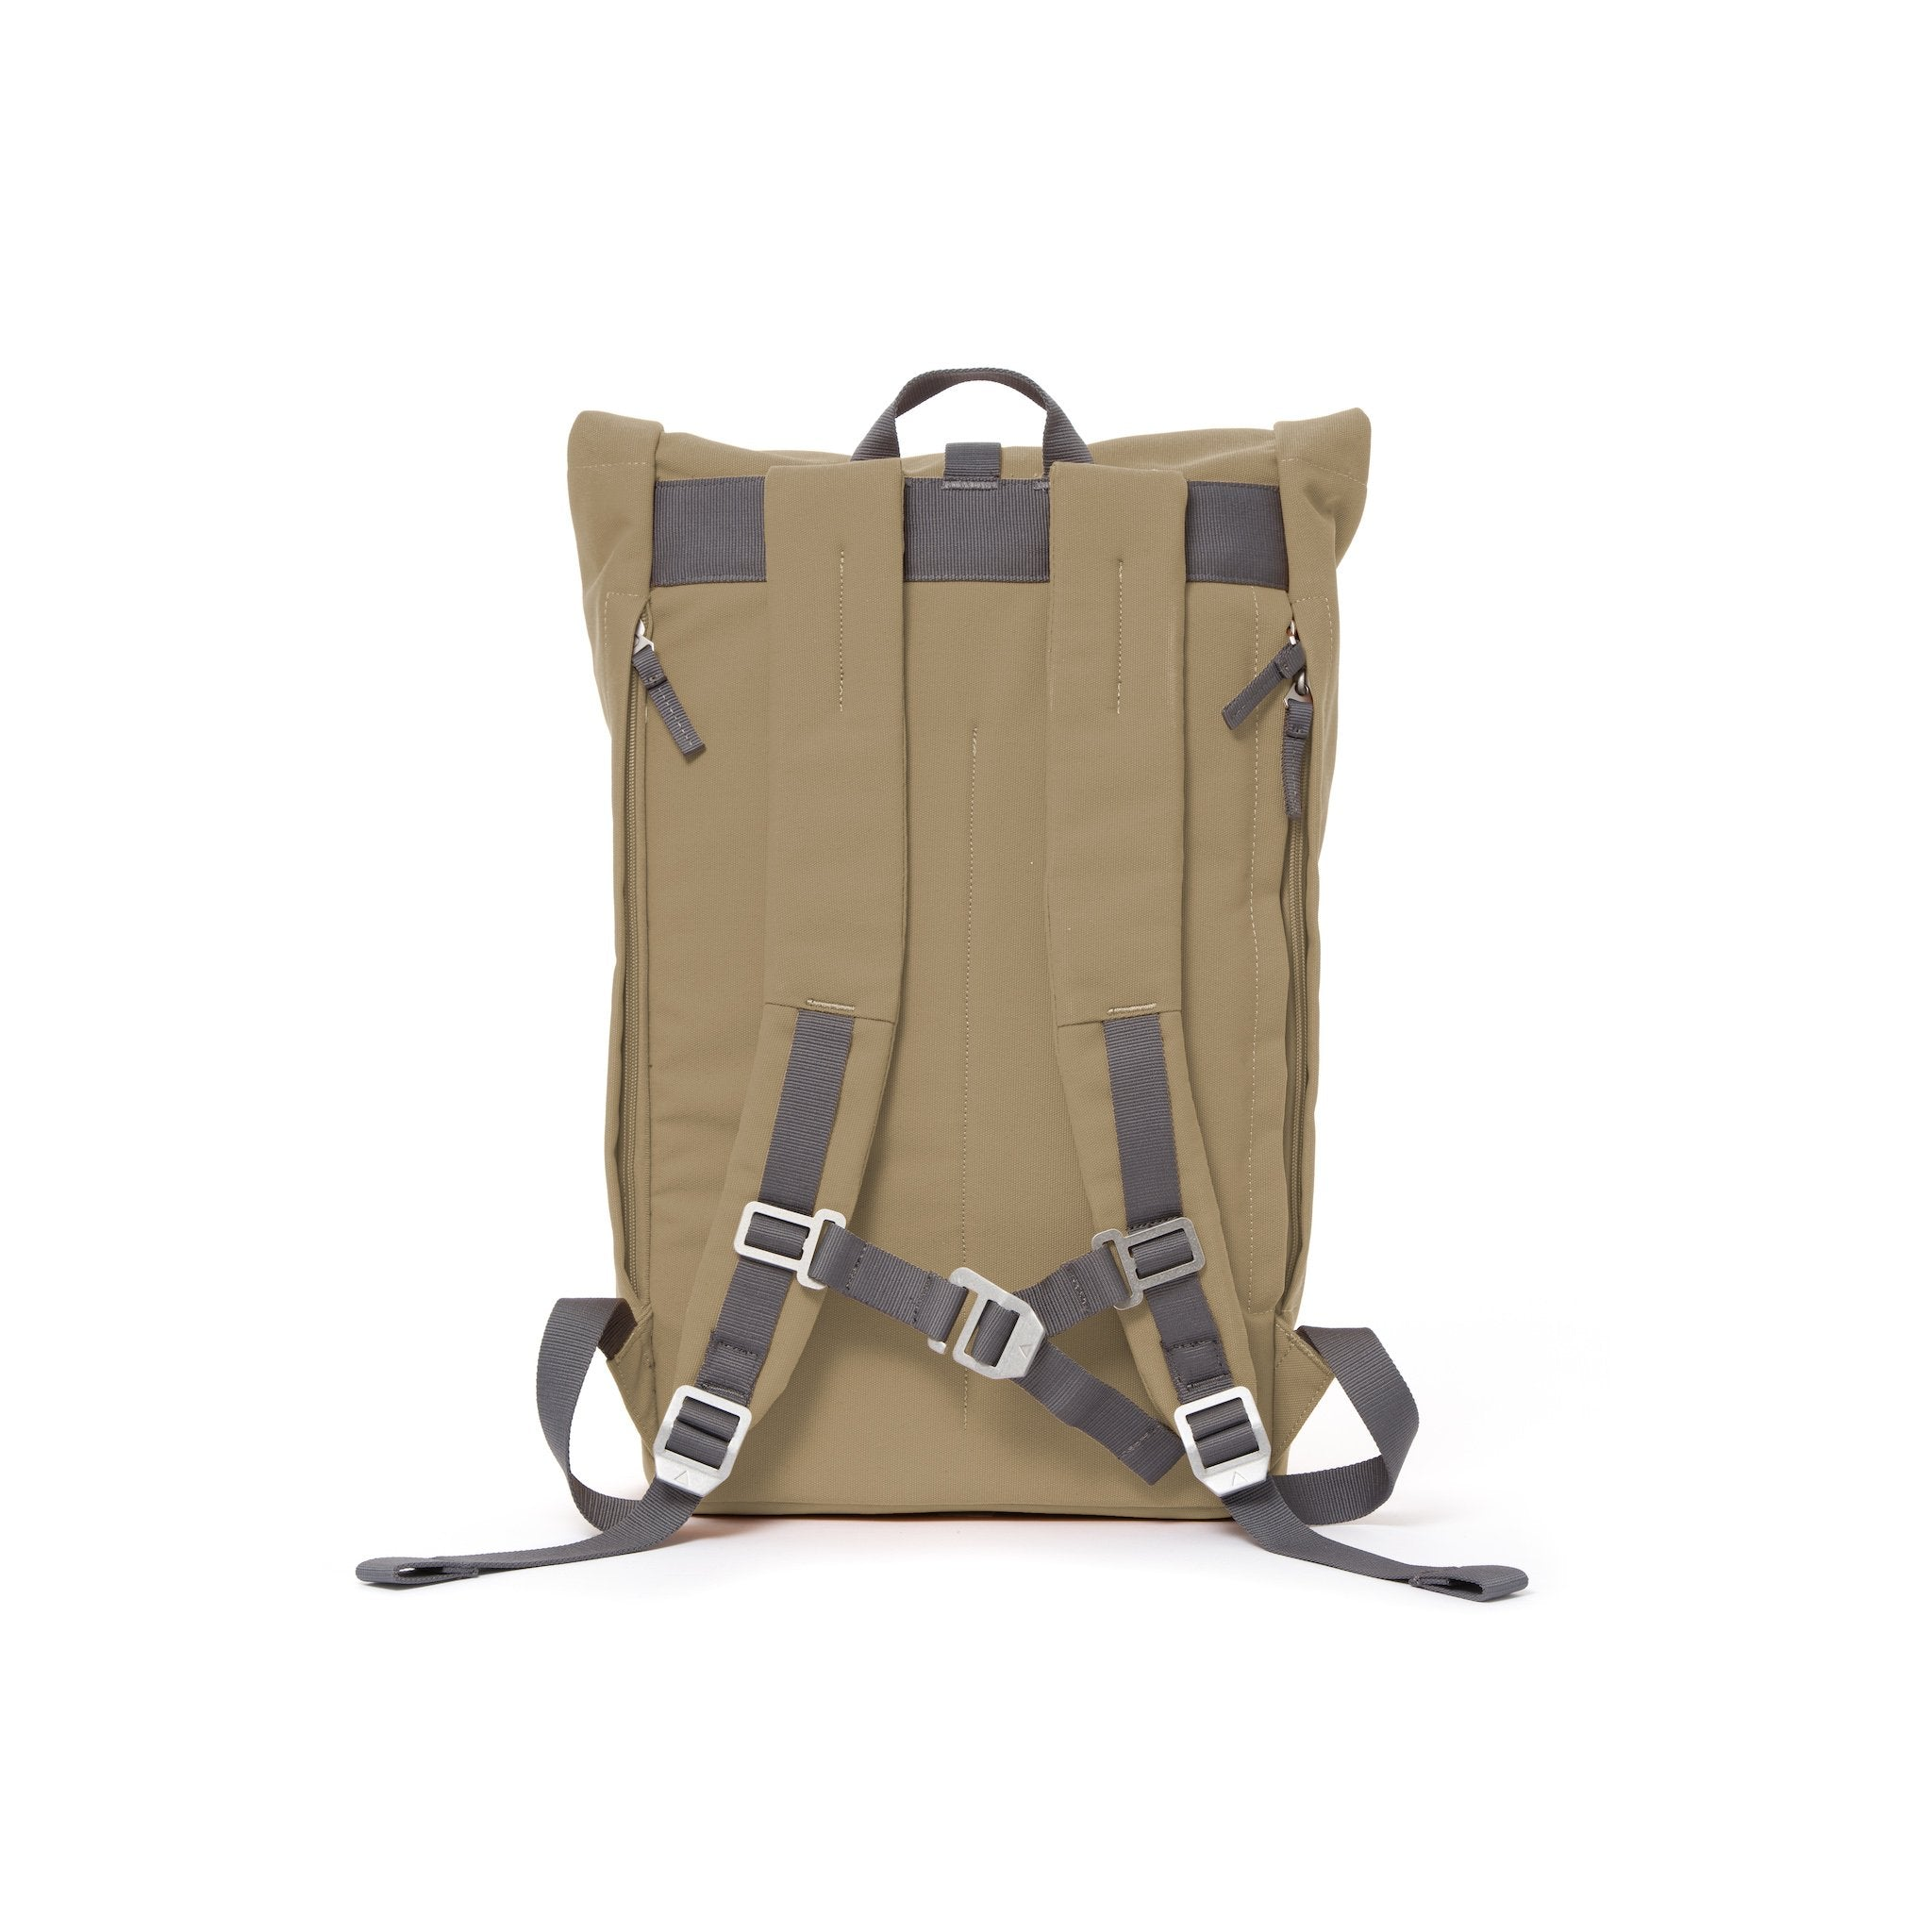 Khaki rolltop backpack with padded shoulder straps and chest strap.